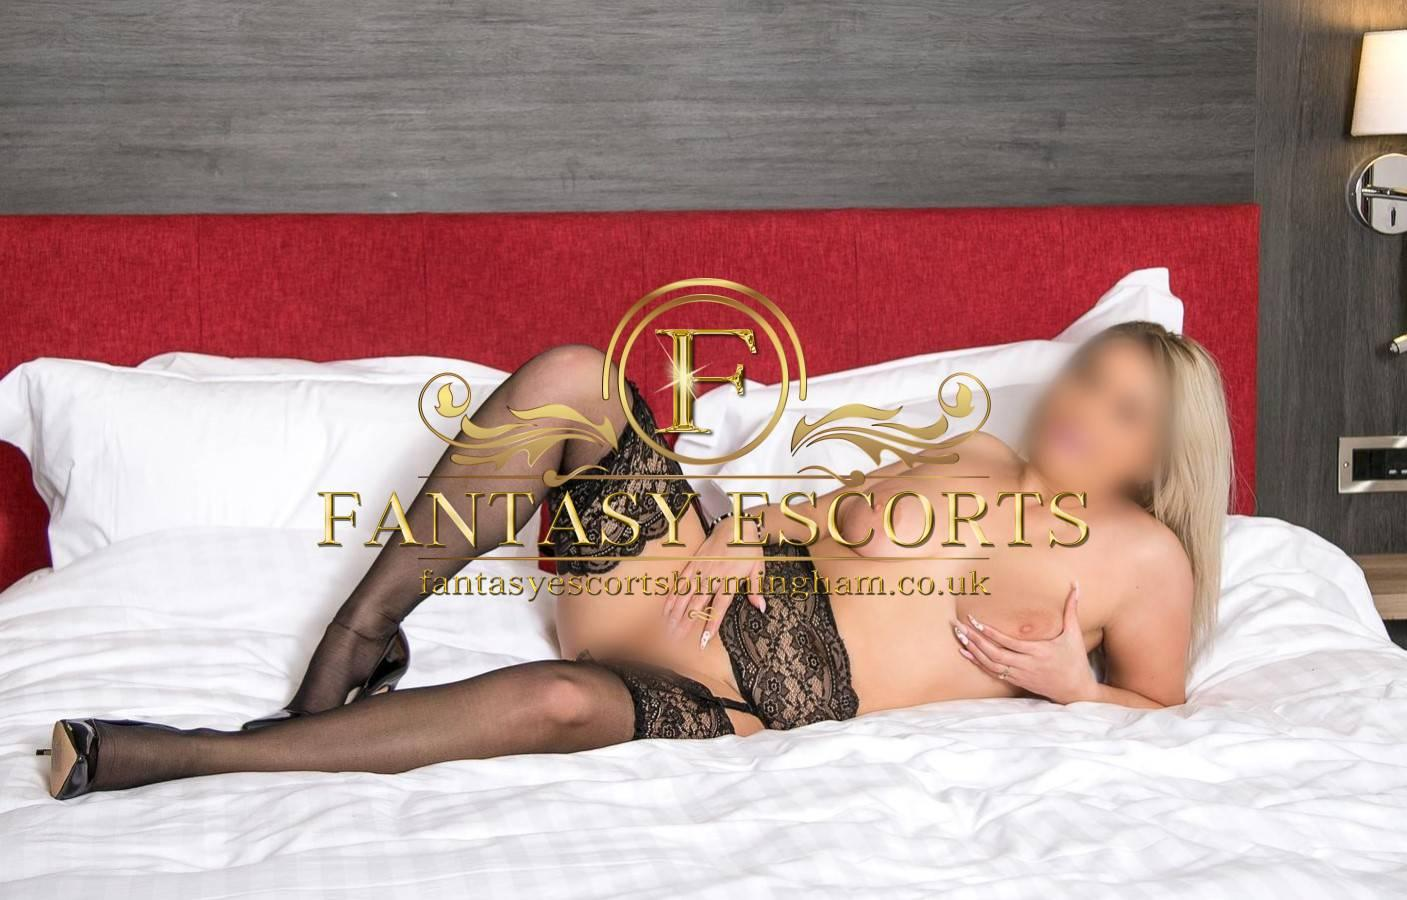 Bianca from Fantasy Escorts Birmingham